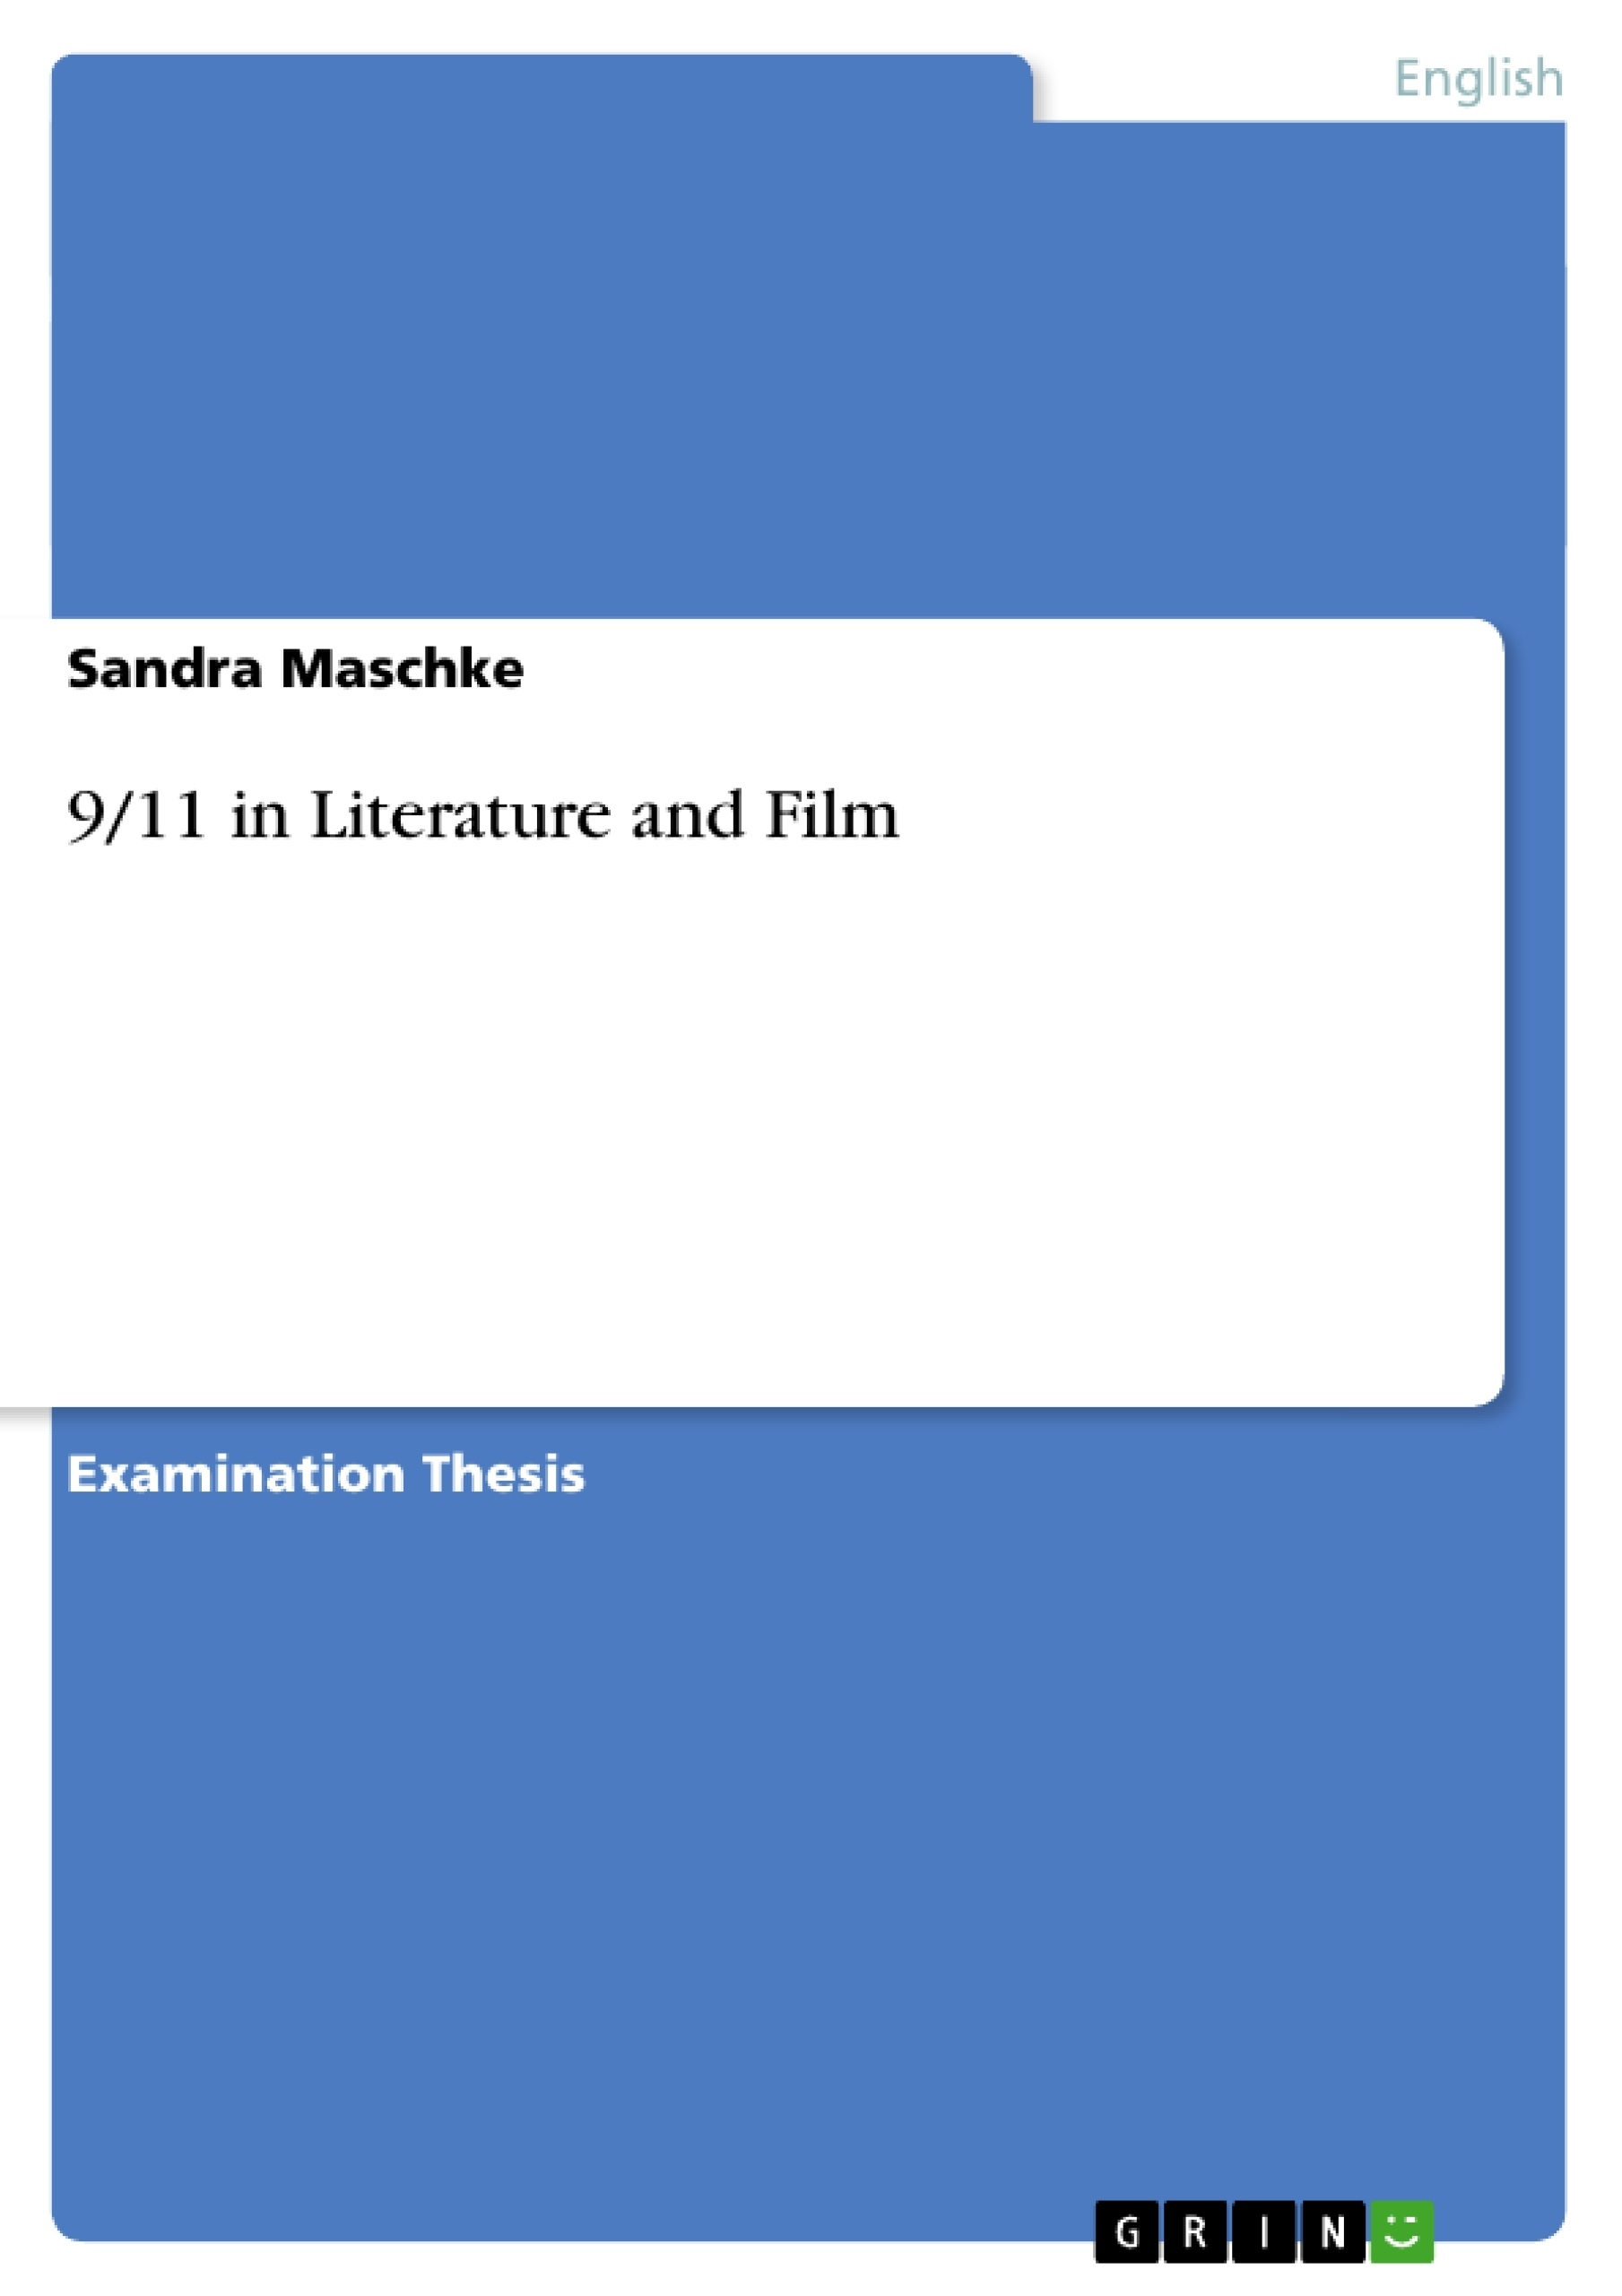 Title: 9/11 in Literature and Film